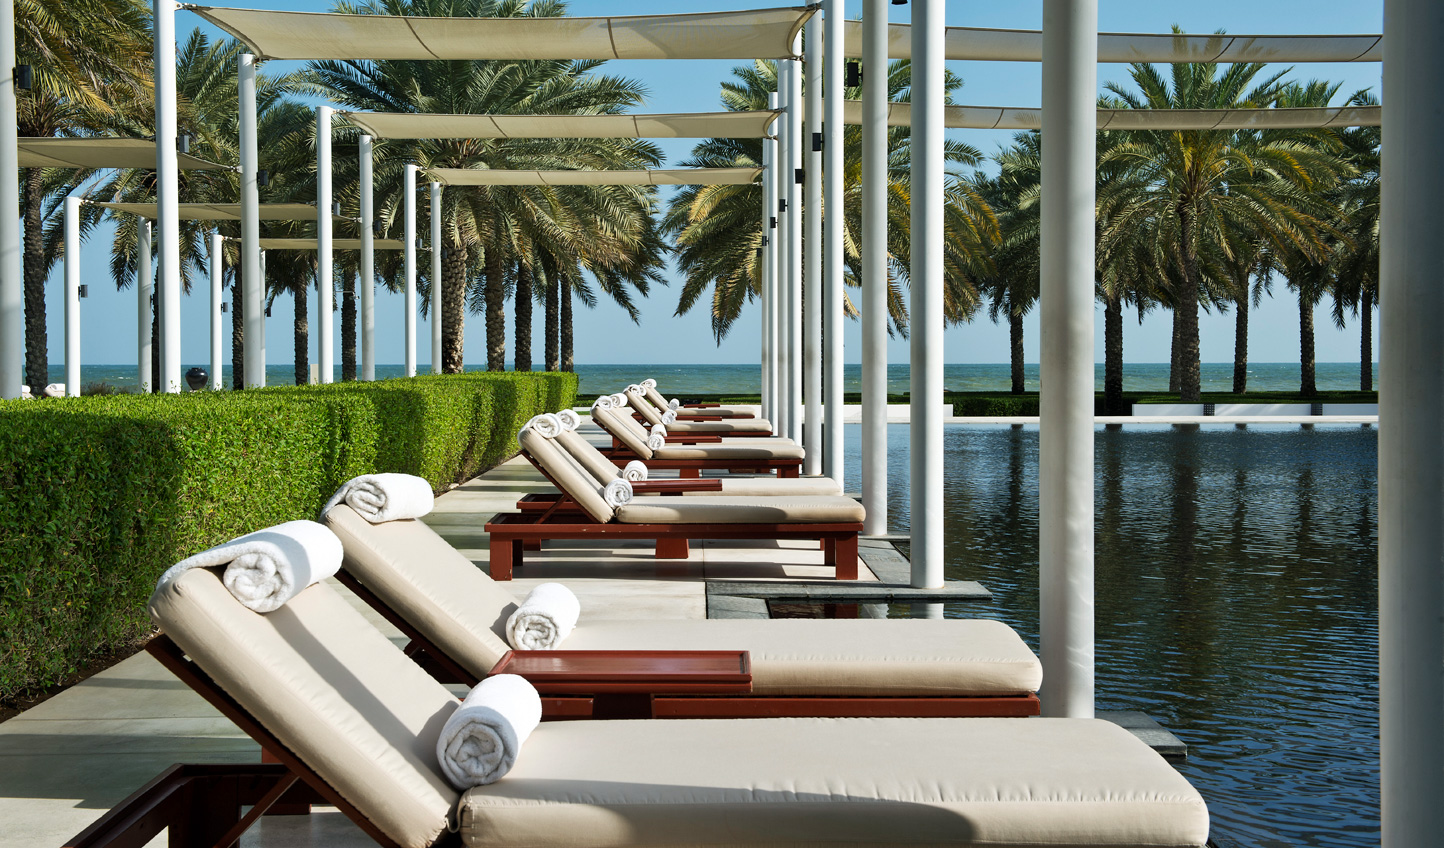 After a morning exploring the sights, spend the afternoon by the pool